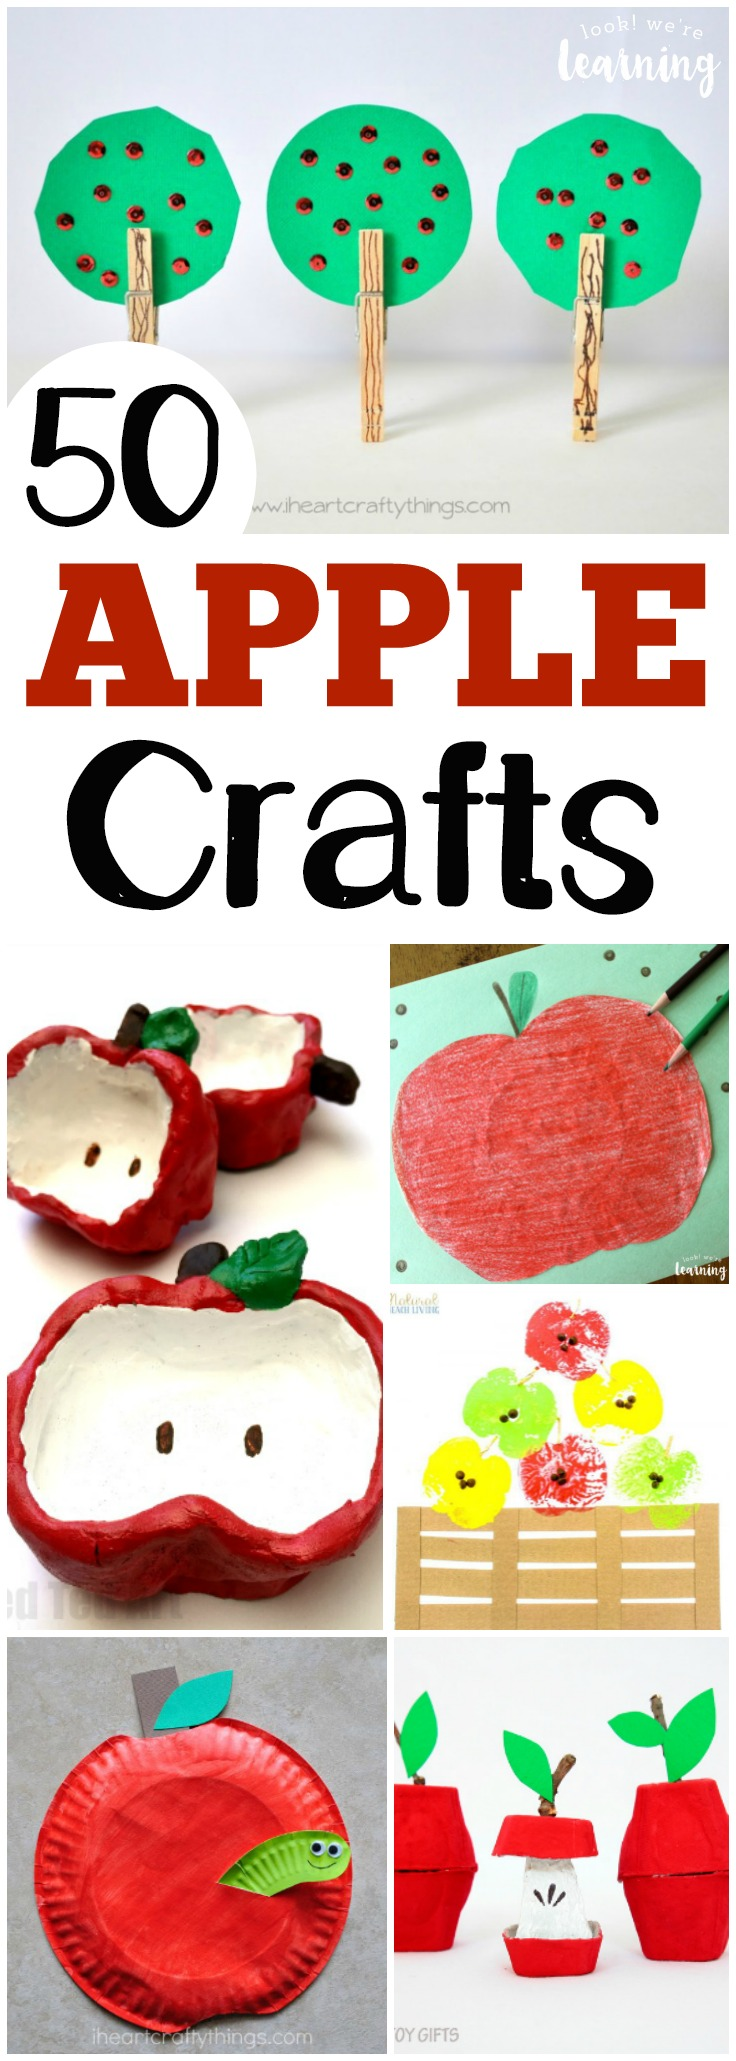 Get into the fall spirit with these absolutely adorable apple crafts for kids to make!